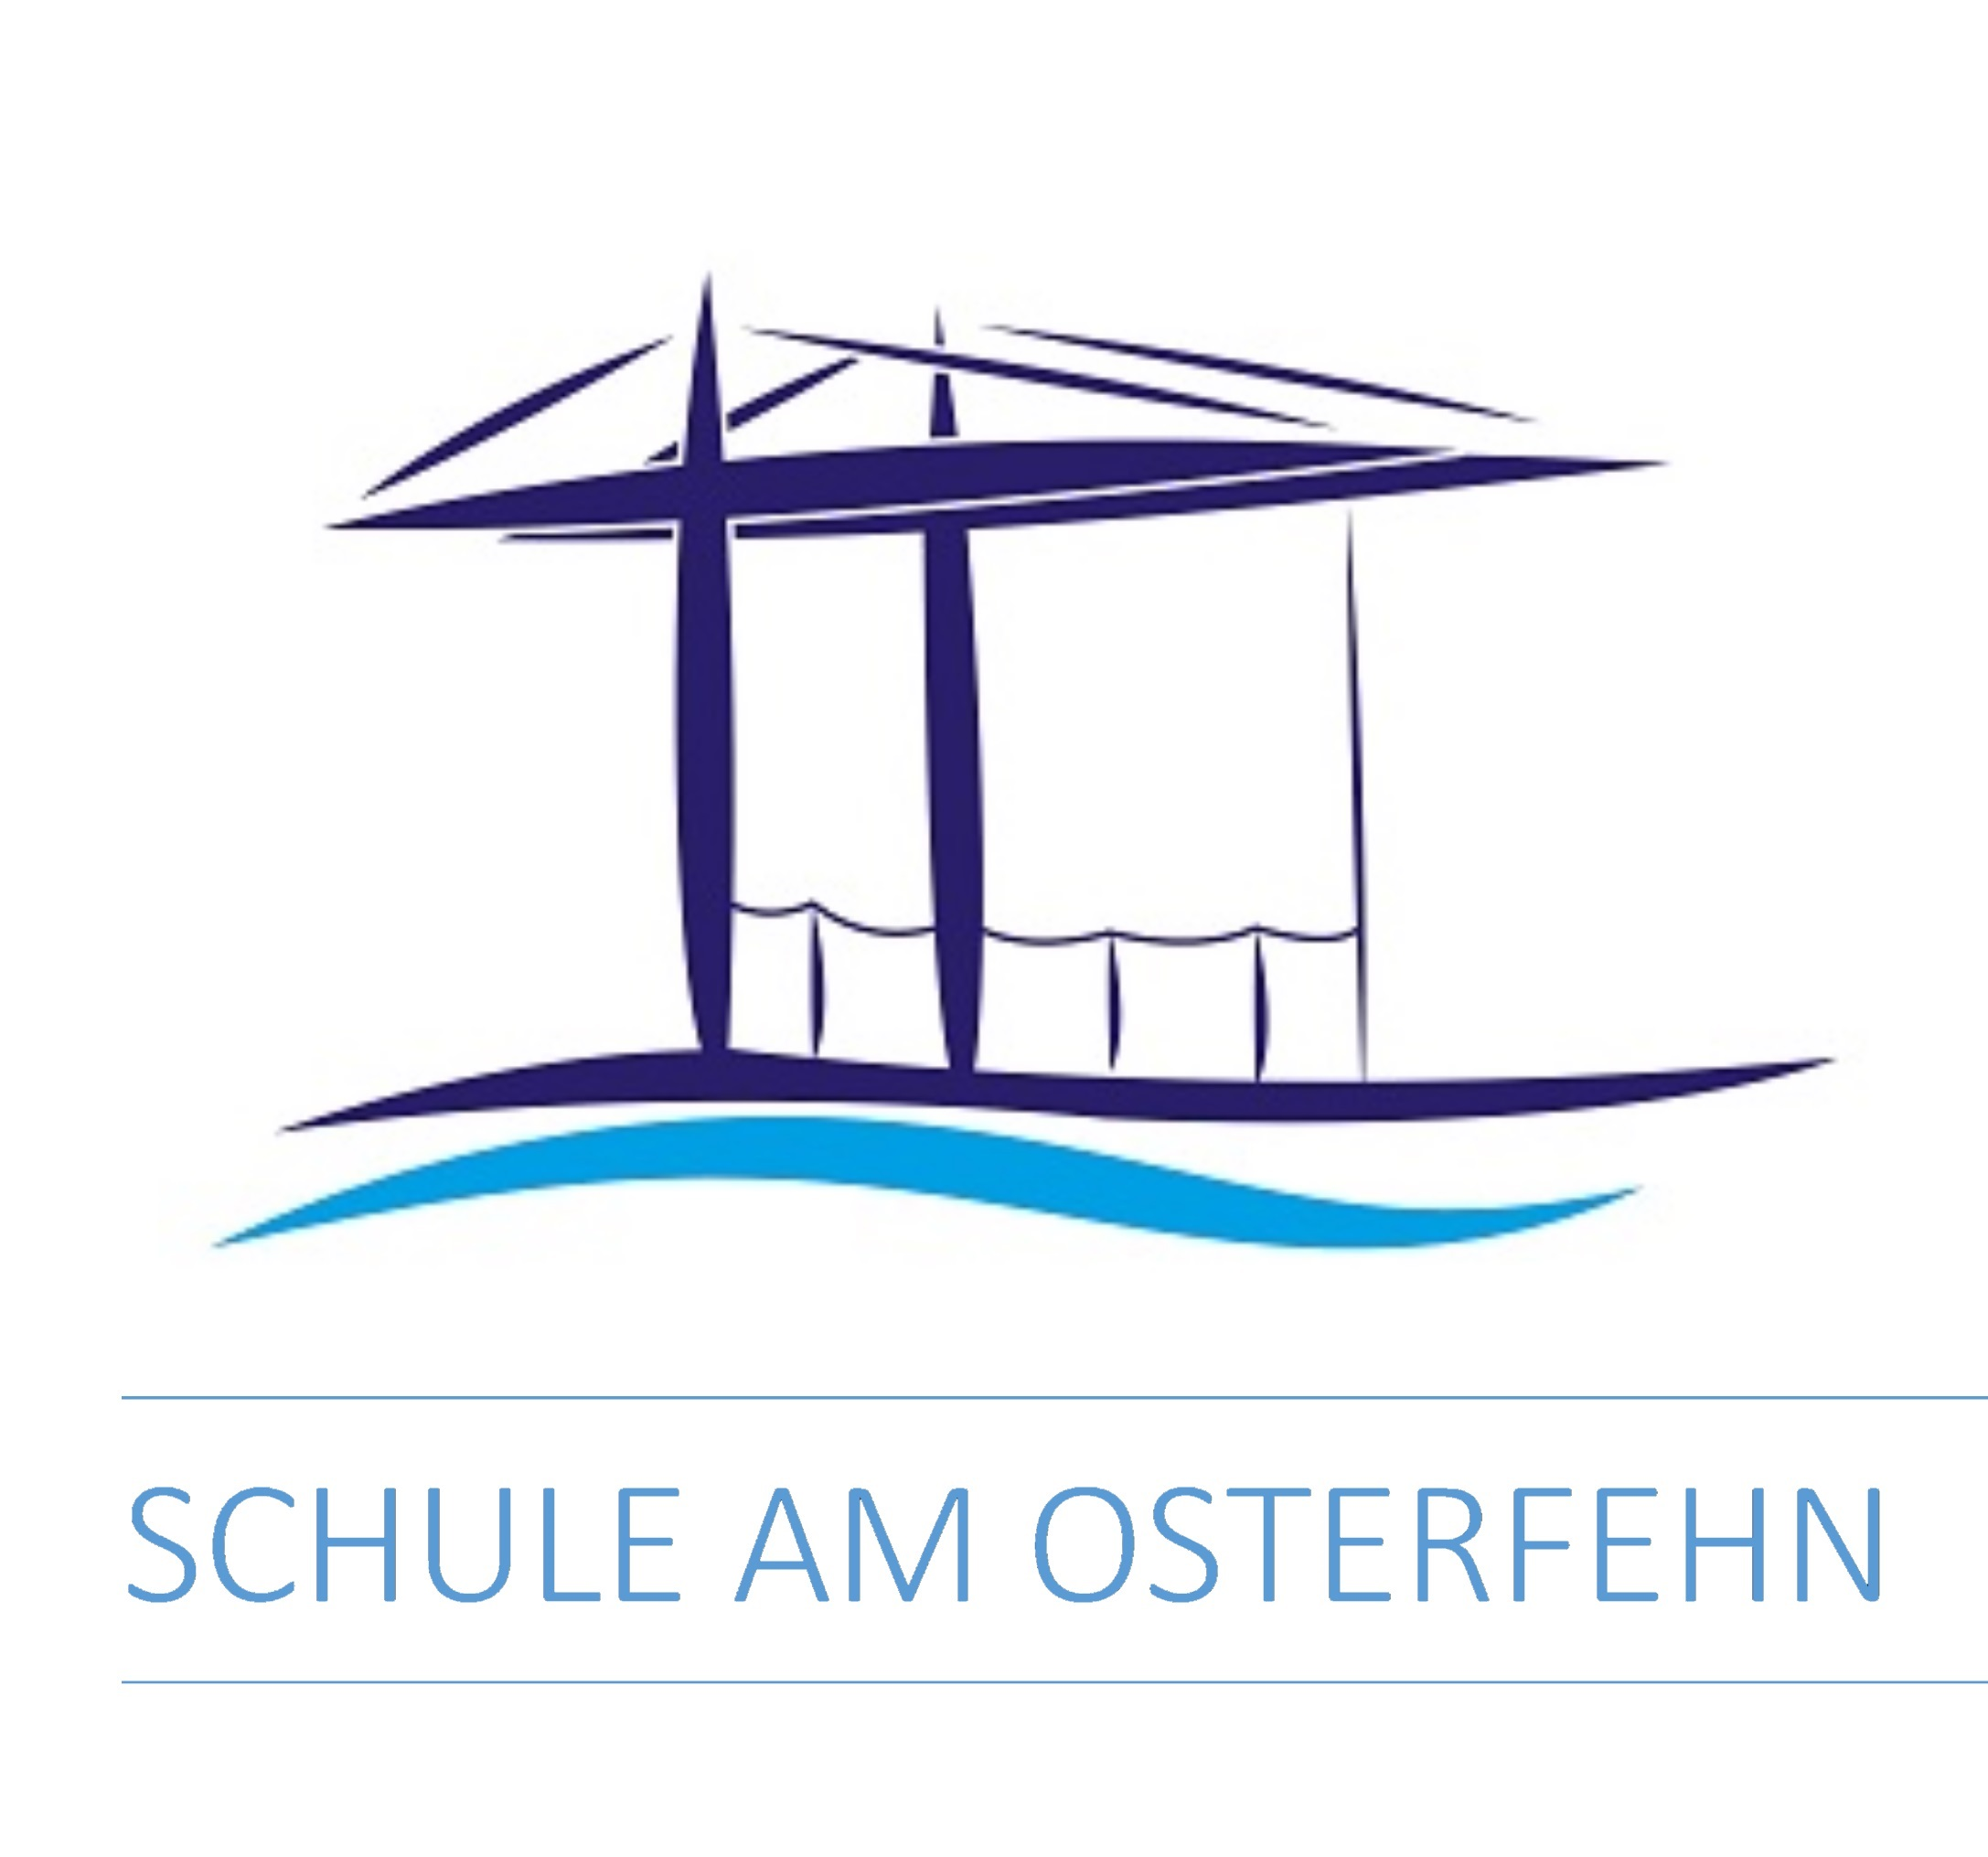 Schule am Osterfehn